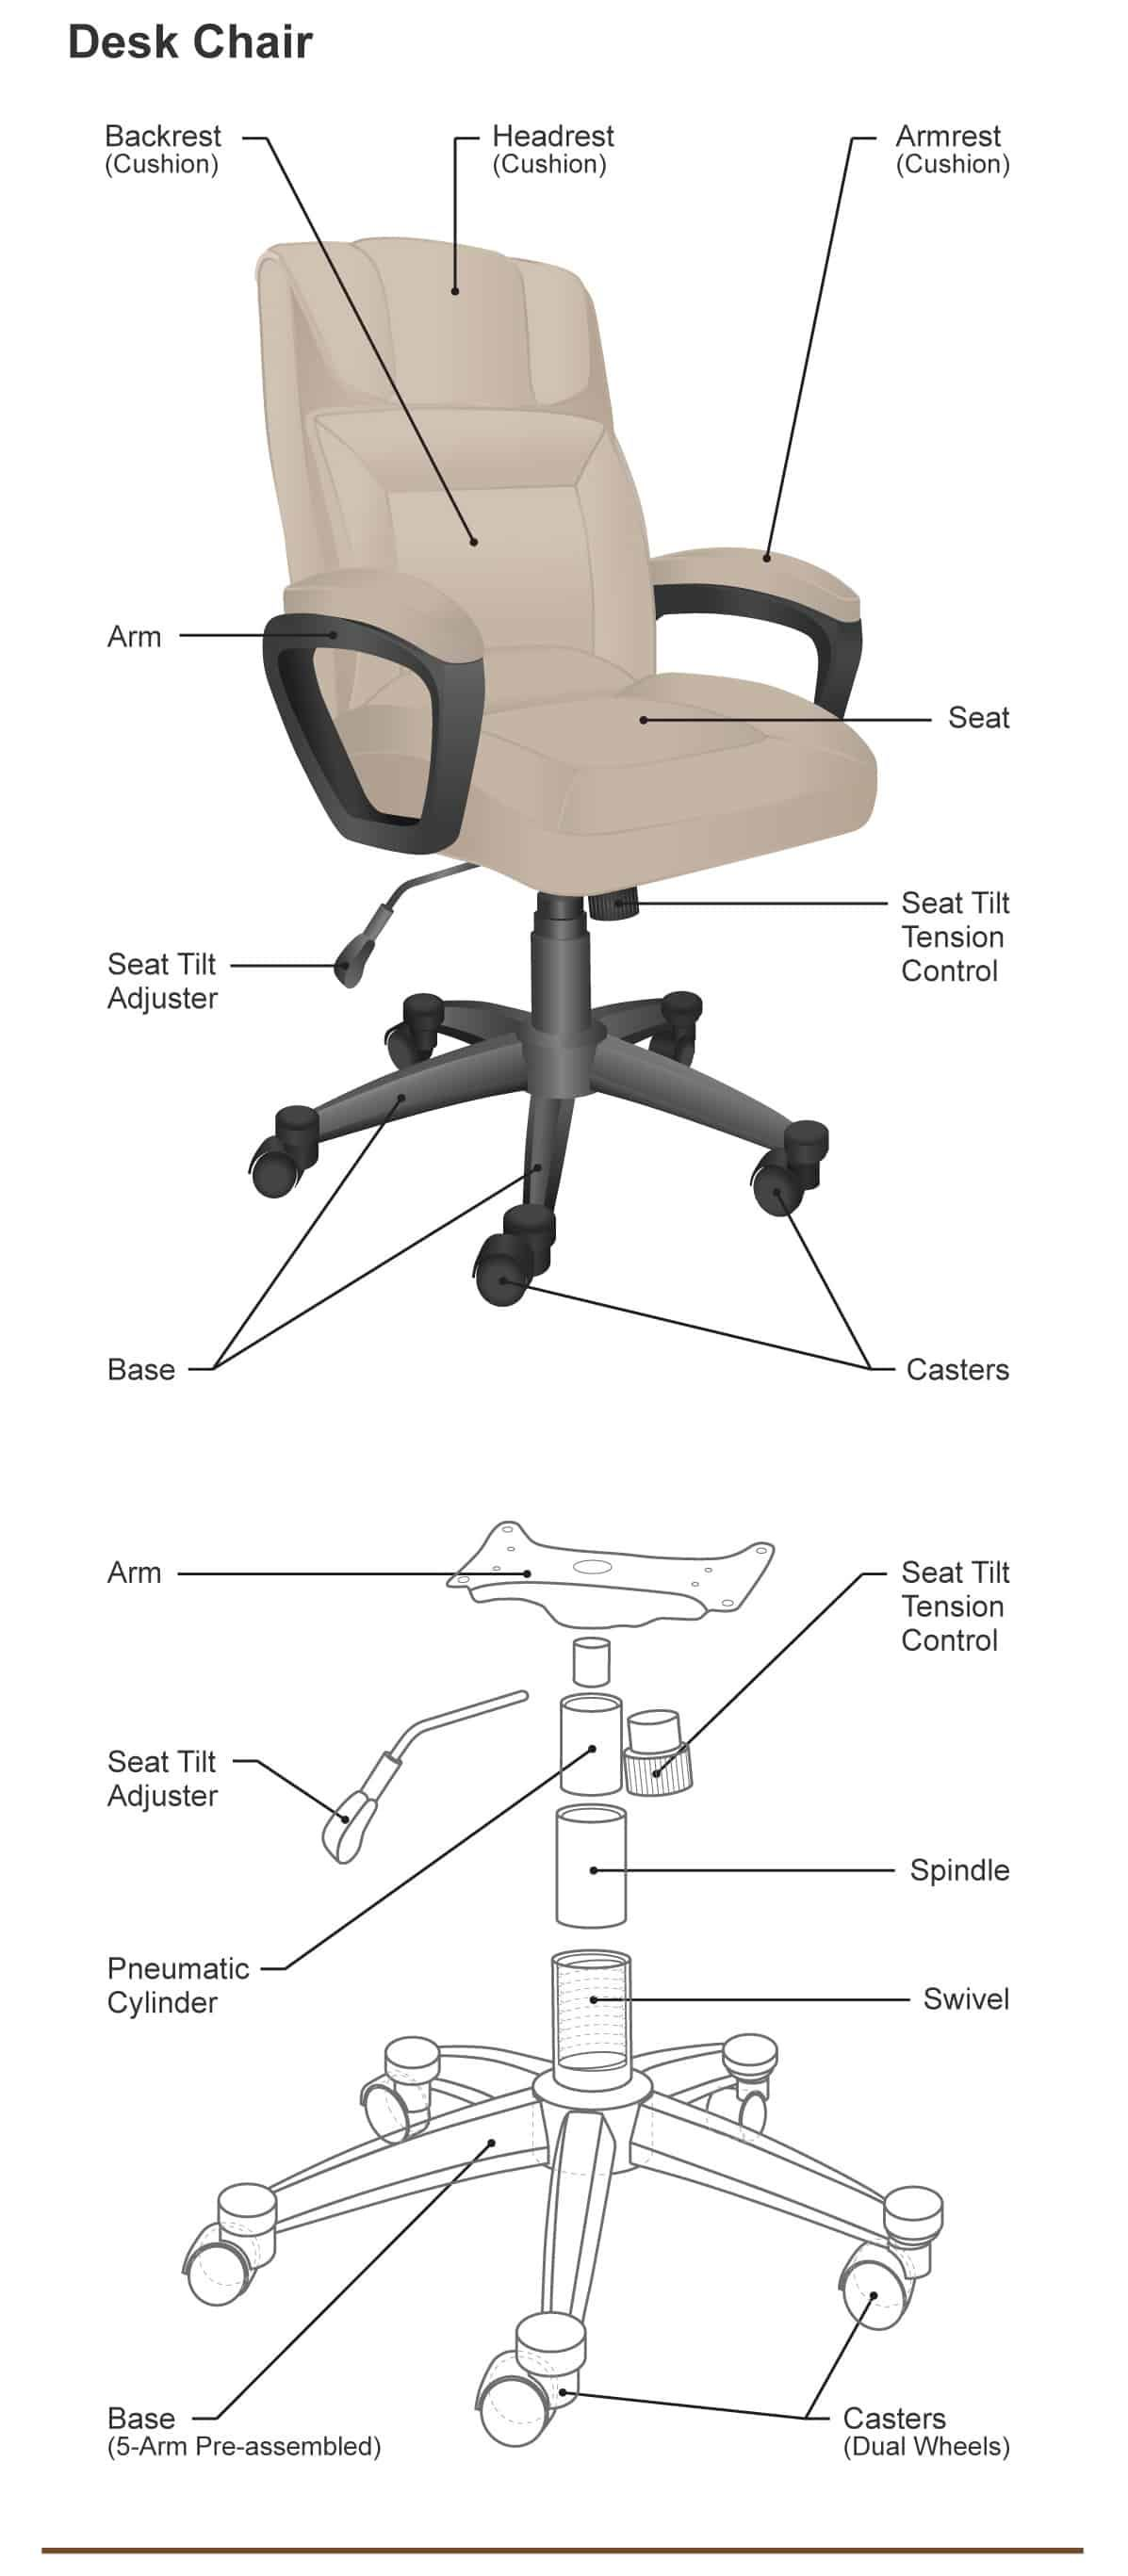 The Different Parts Of A Chair Dining Desk And Armchair Chair Parts Chair Best Home Office Desk